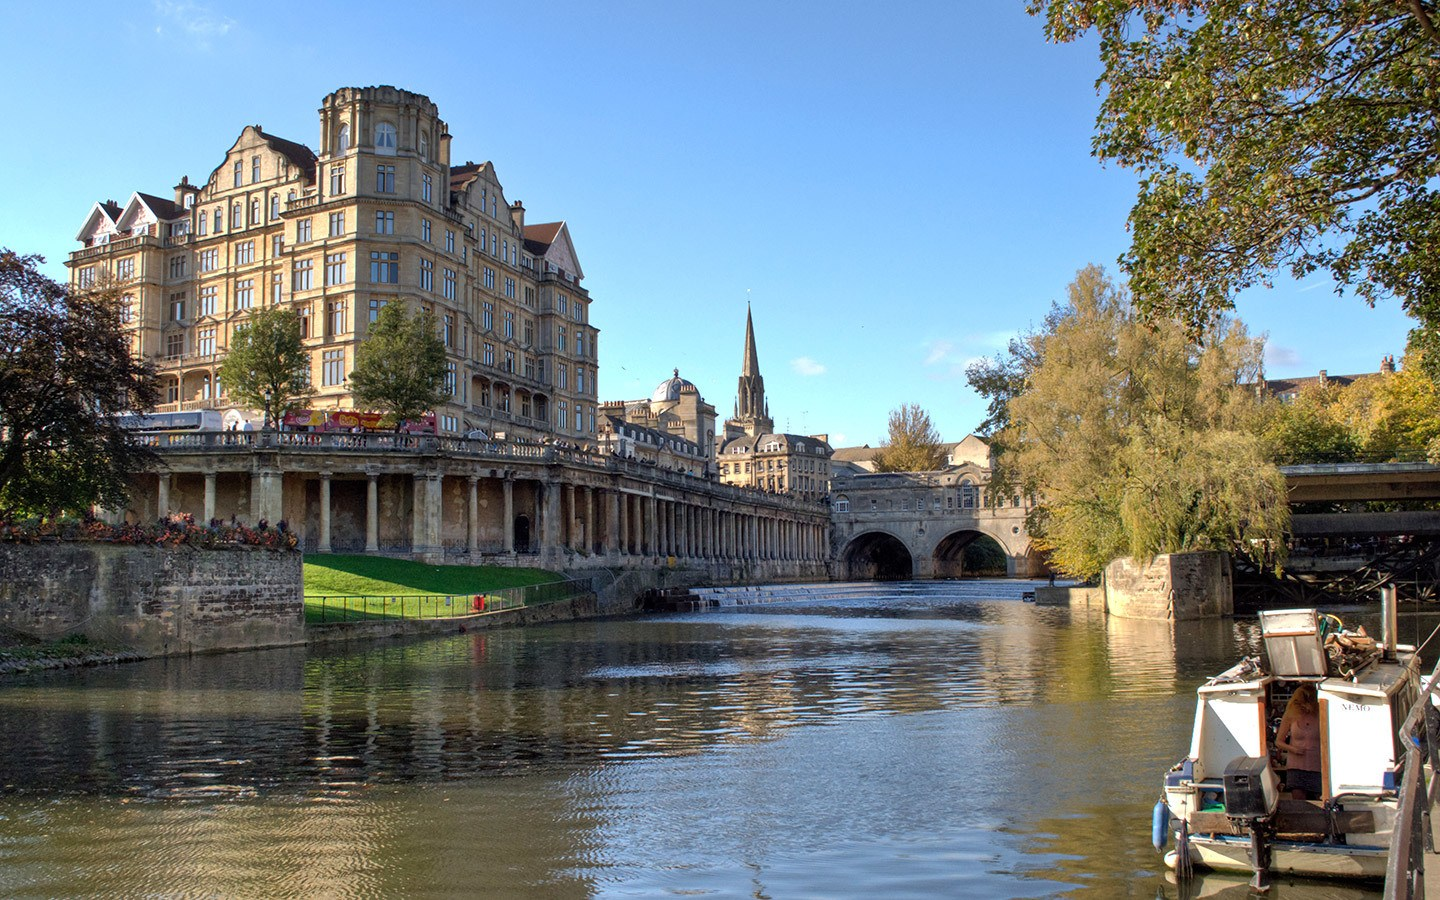 Boat trip along the River Avon, Bath